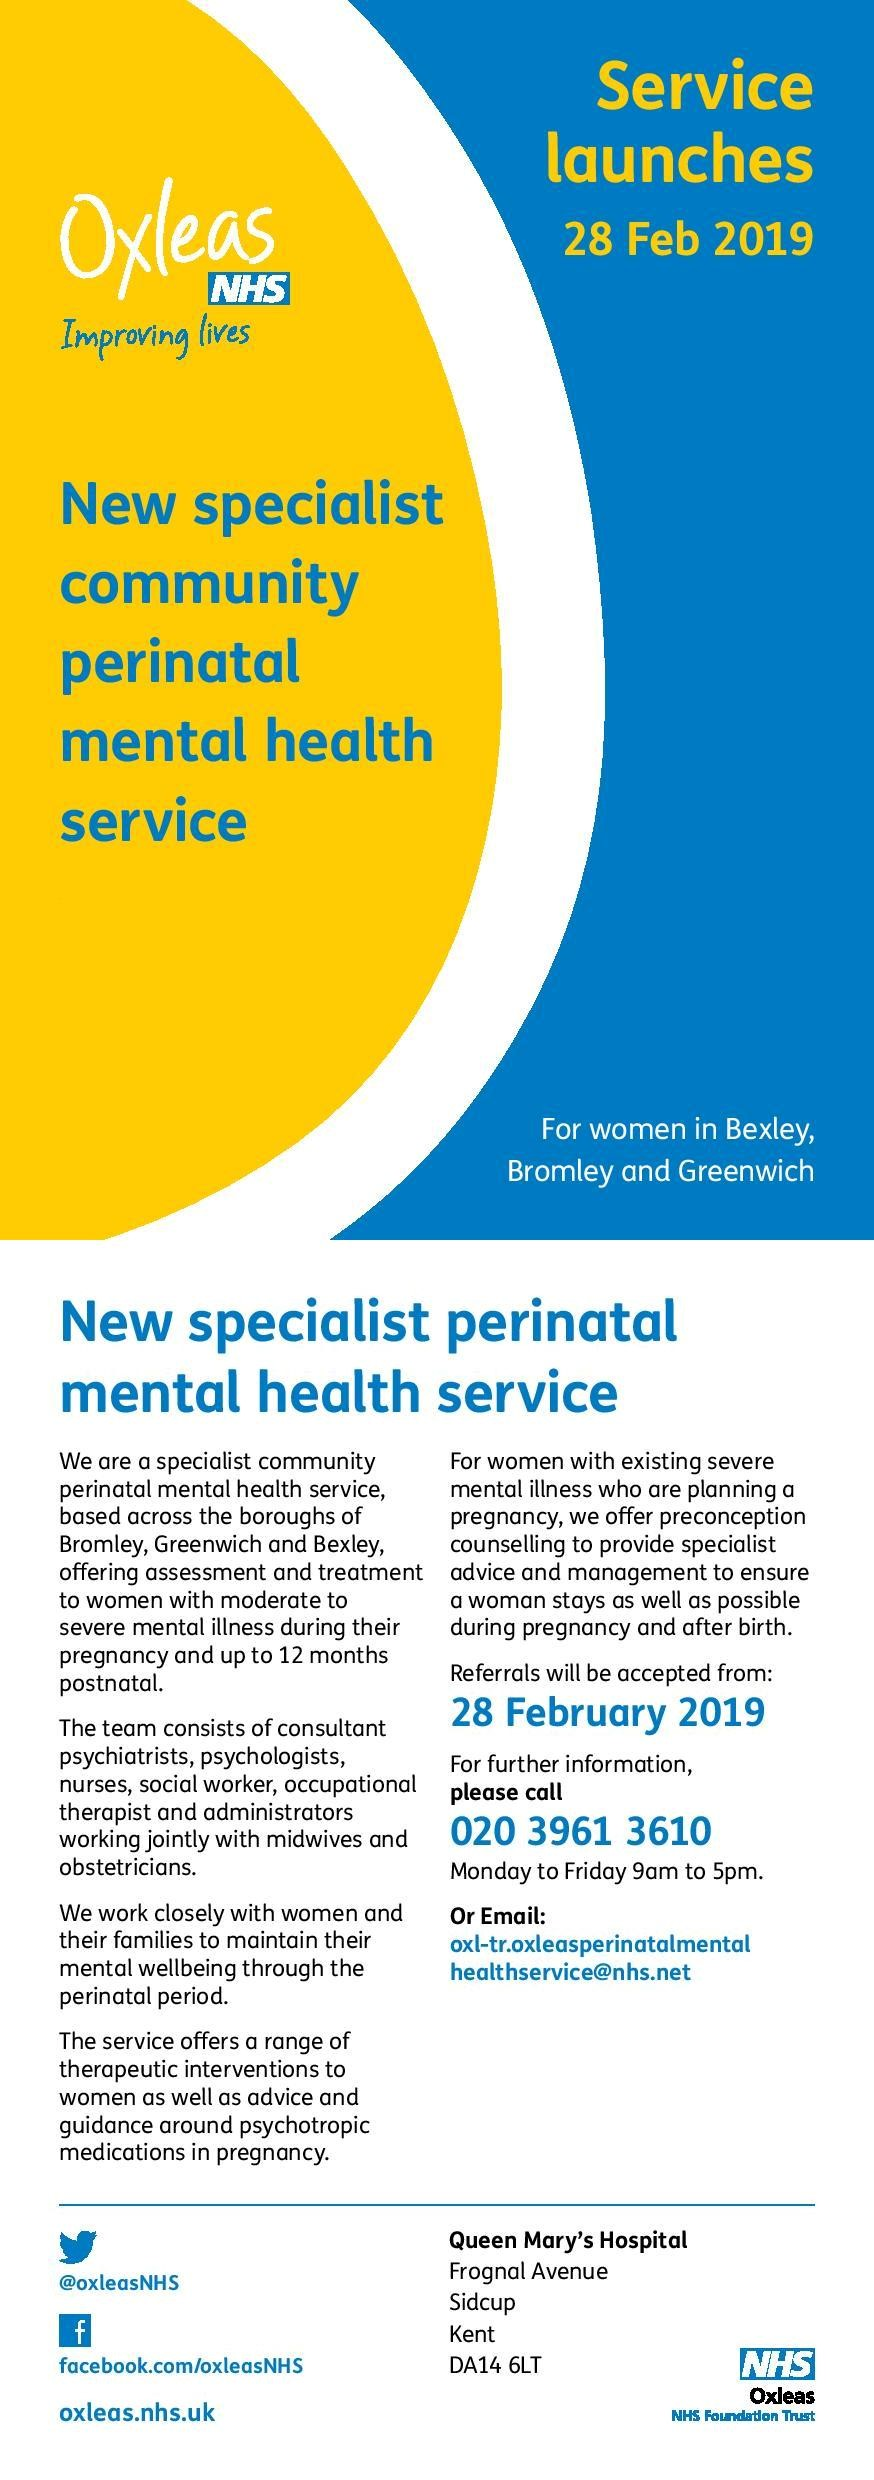 New specialist community perinatal mental health service